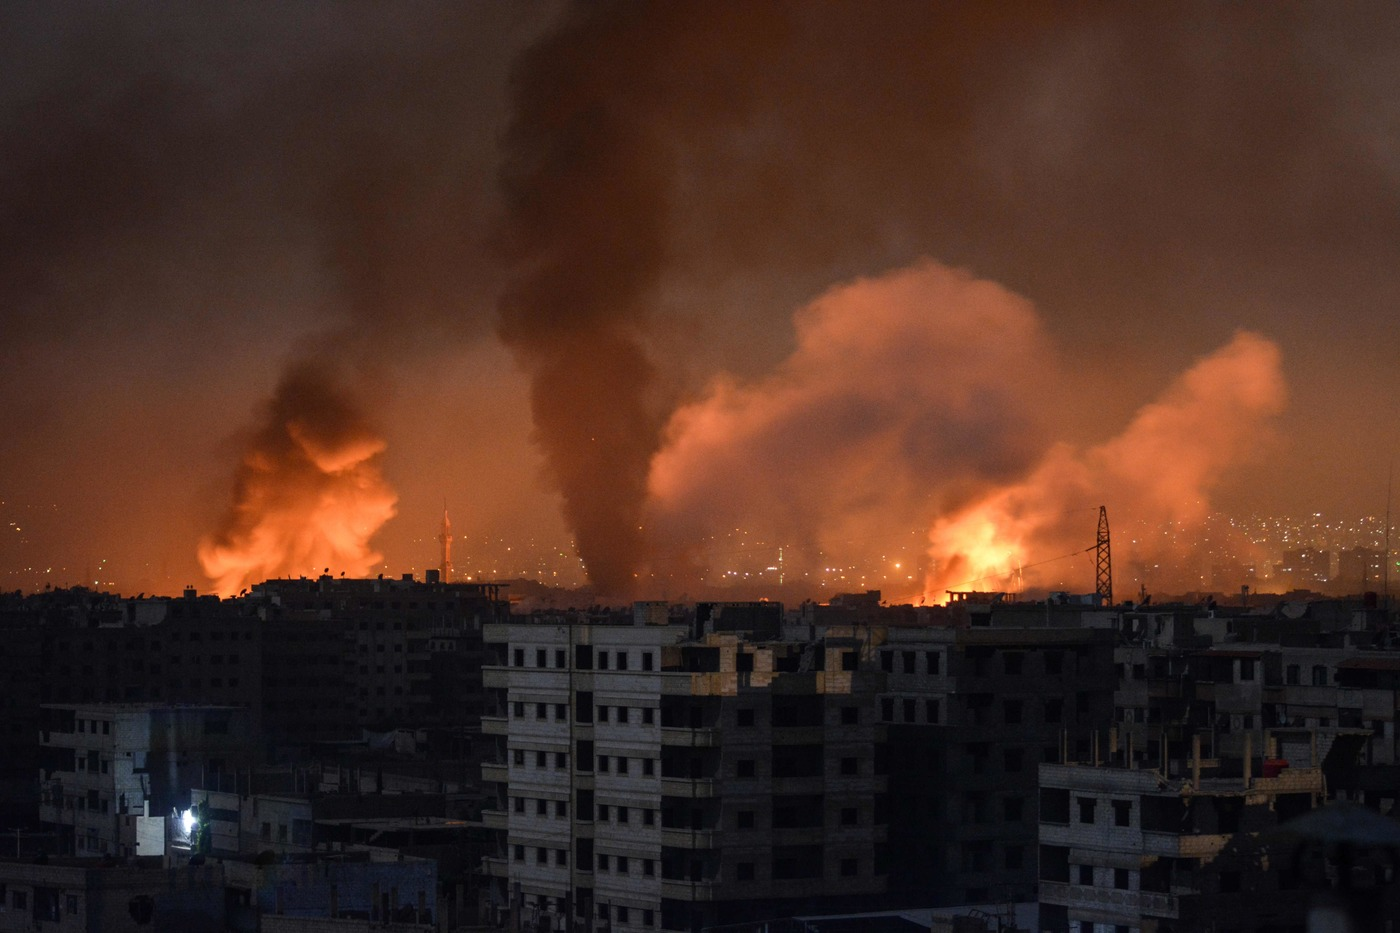 A picture taken late on April 28, 2018 shows smoke plumes rising from explosions in the skyline of a southern district of the Syrian capital Damascus, during regime strikes targeting the Islamic State group in the Palestinian camp of Yarmuk, and neighbouring districts. / AFP PHOTO / Rami al SAYED